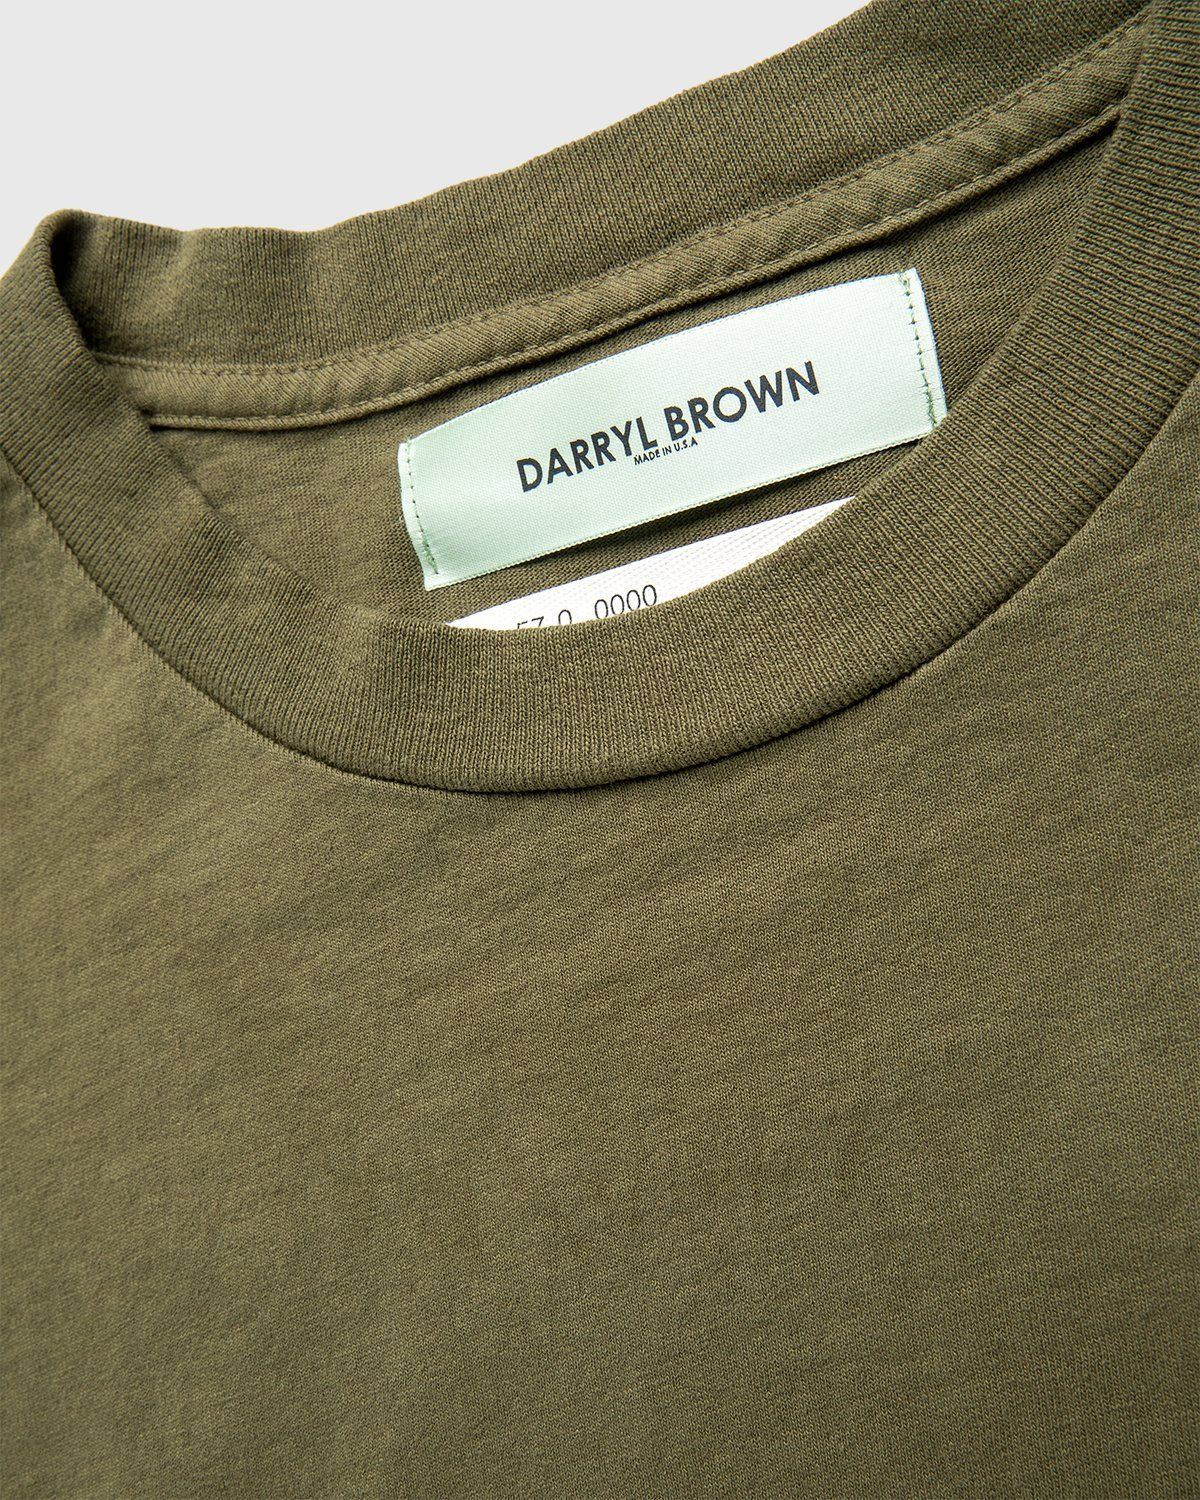 Darryl Brown — T-Shirt Military Olive - Image 3